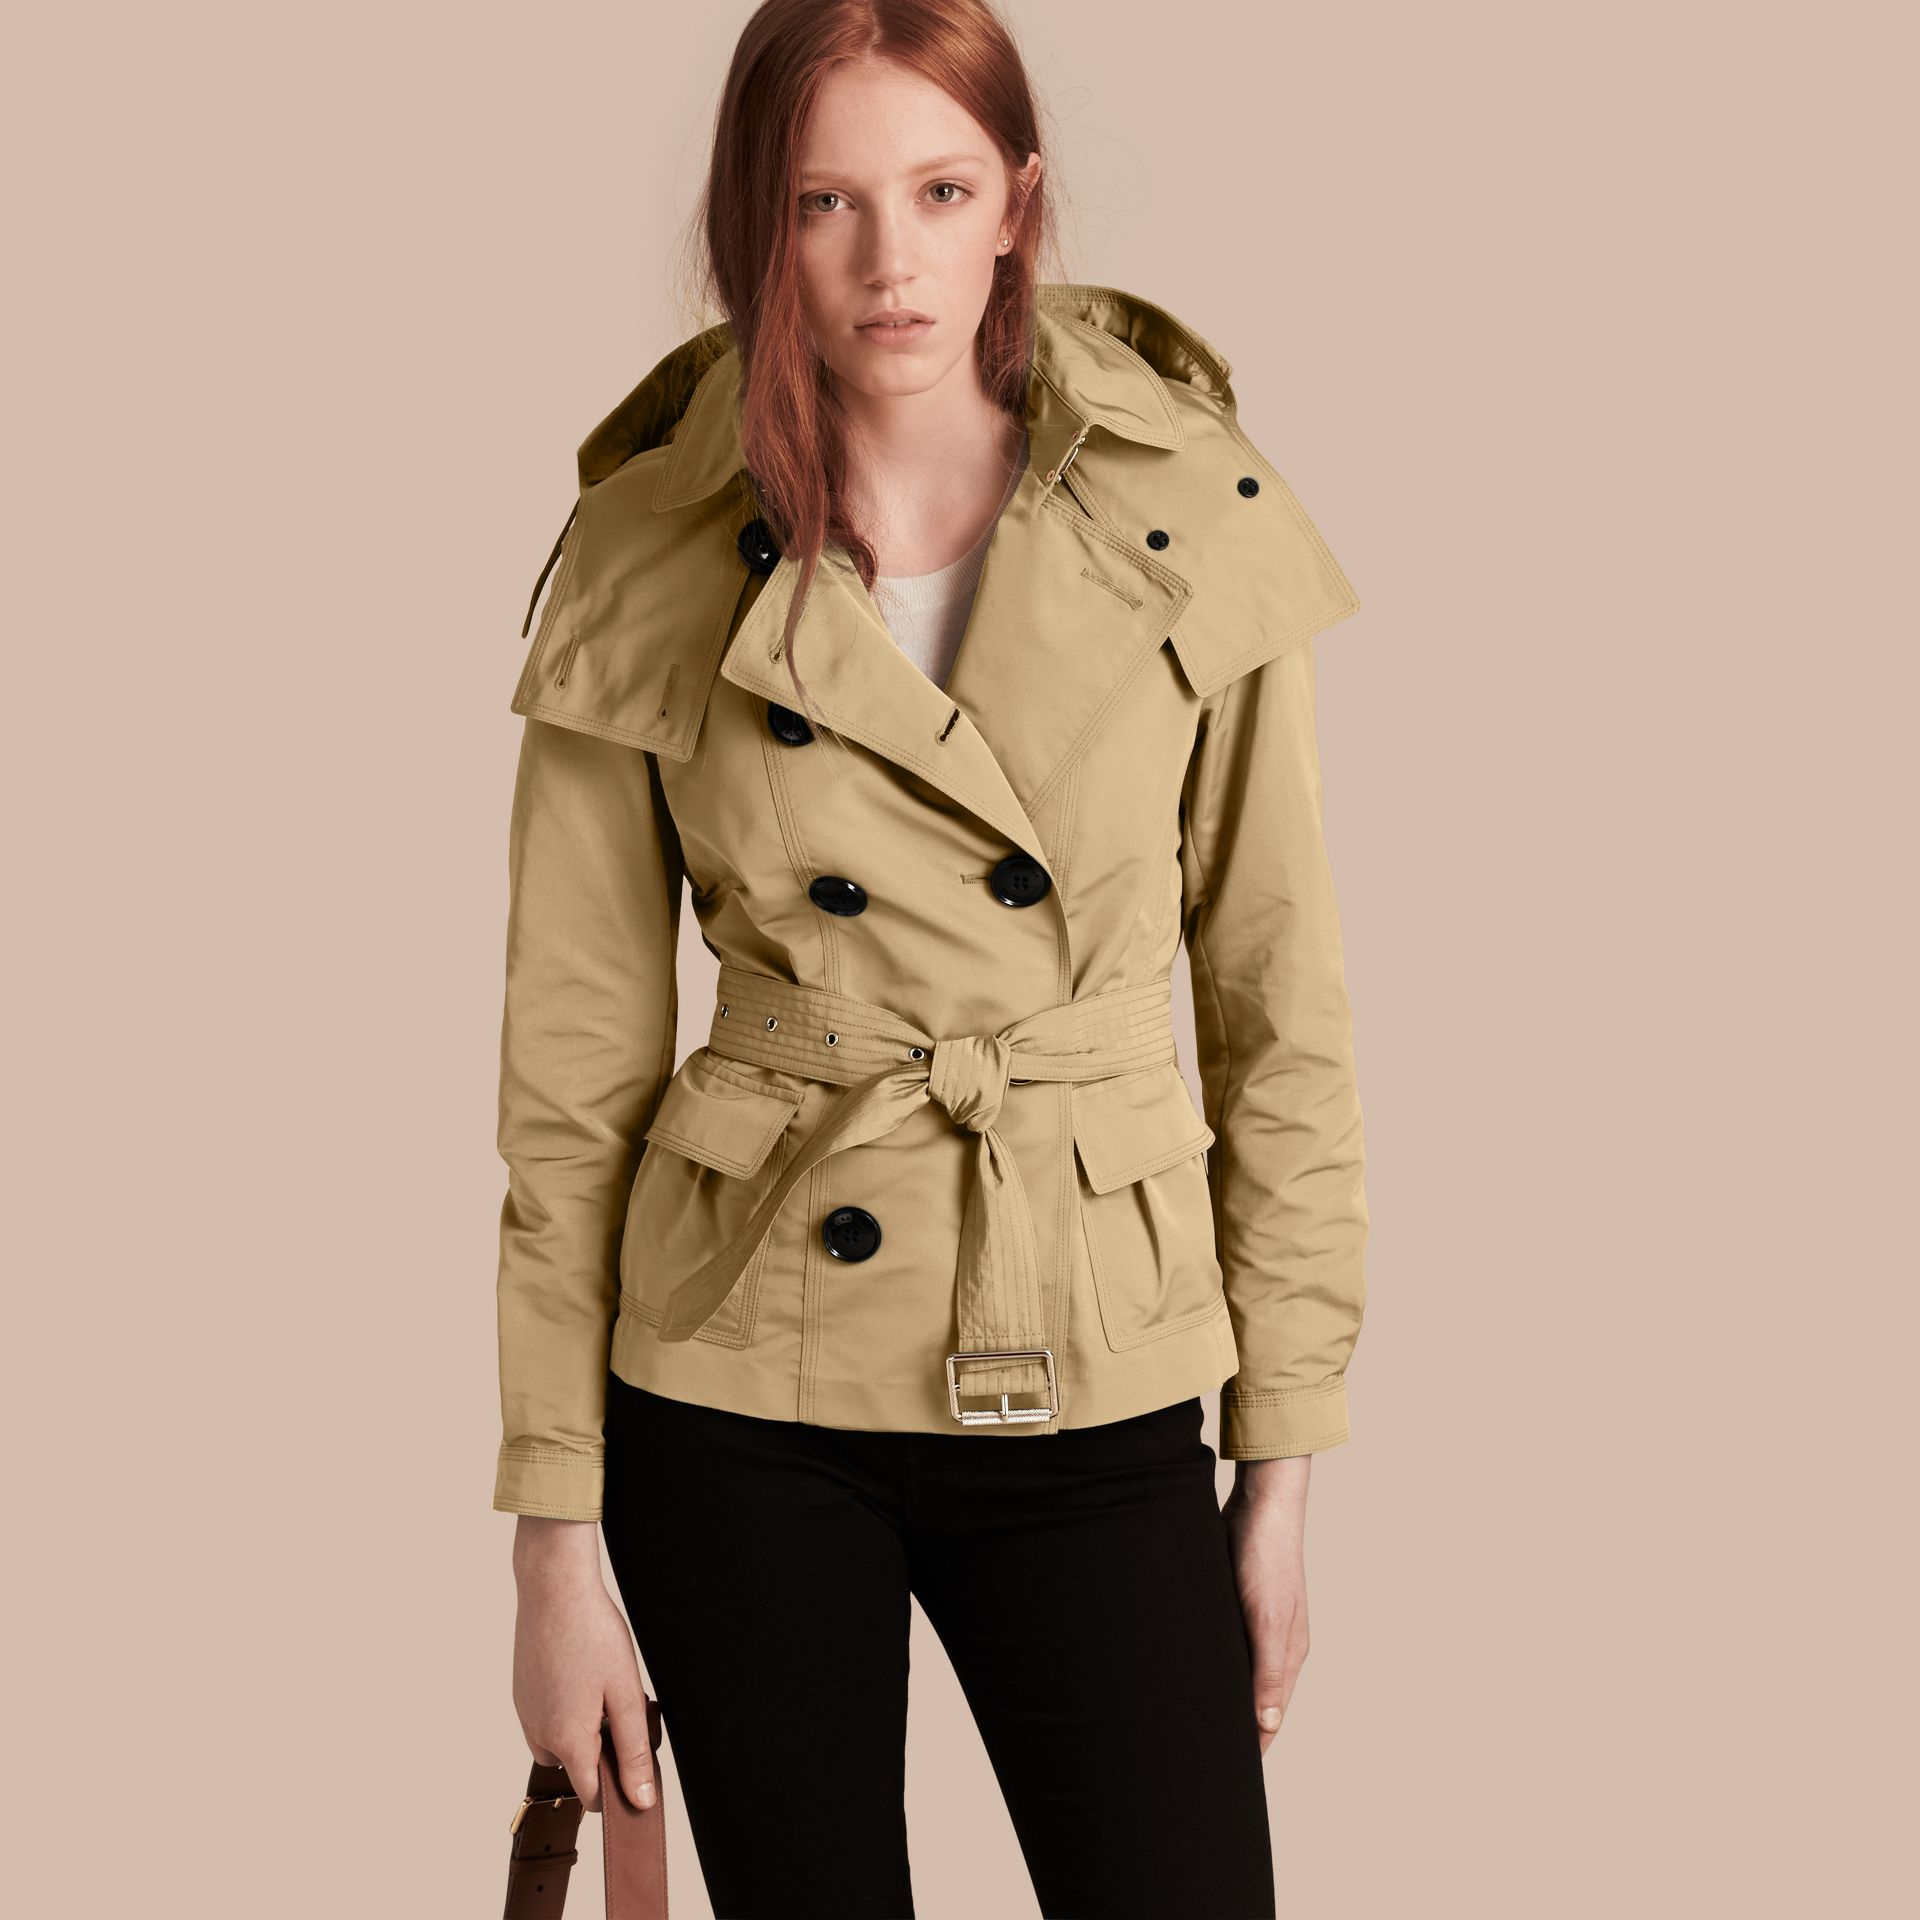 Showerproof Taffeta Trench Jacket with Detachable Hood in Honey - gallery image 1